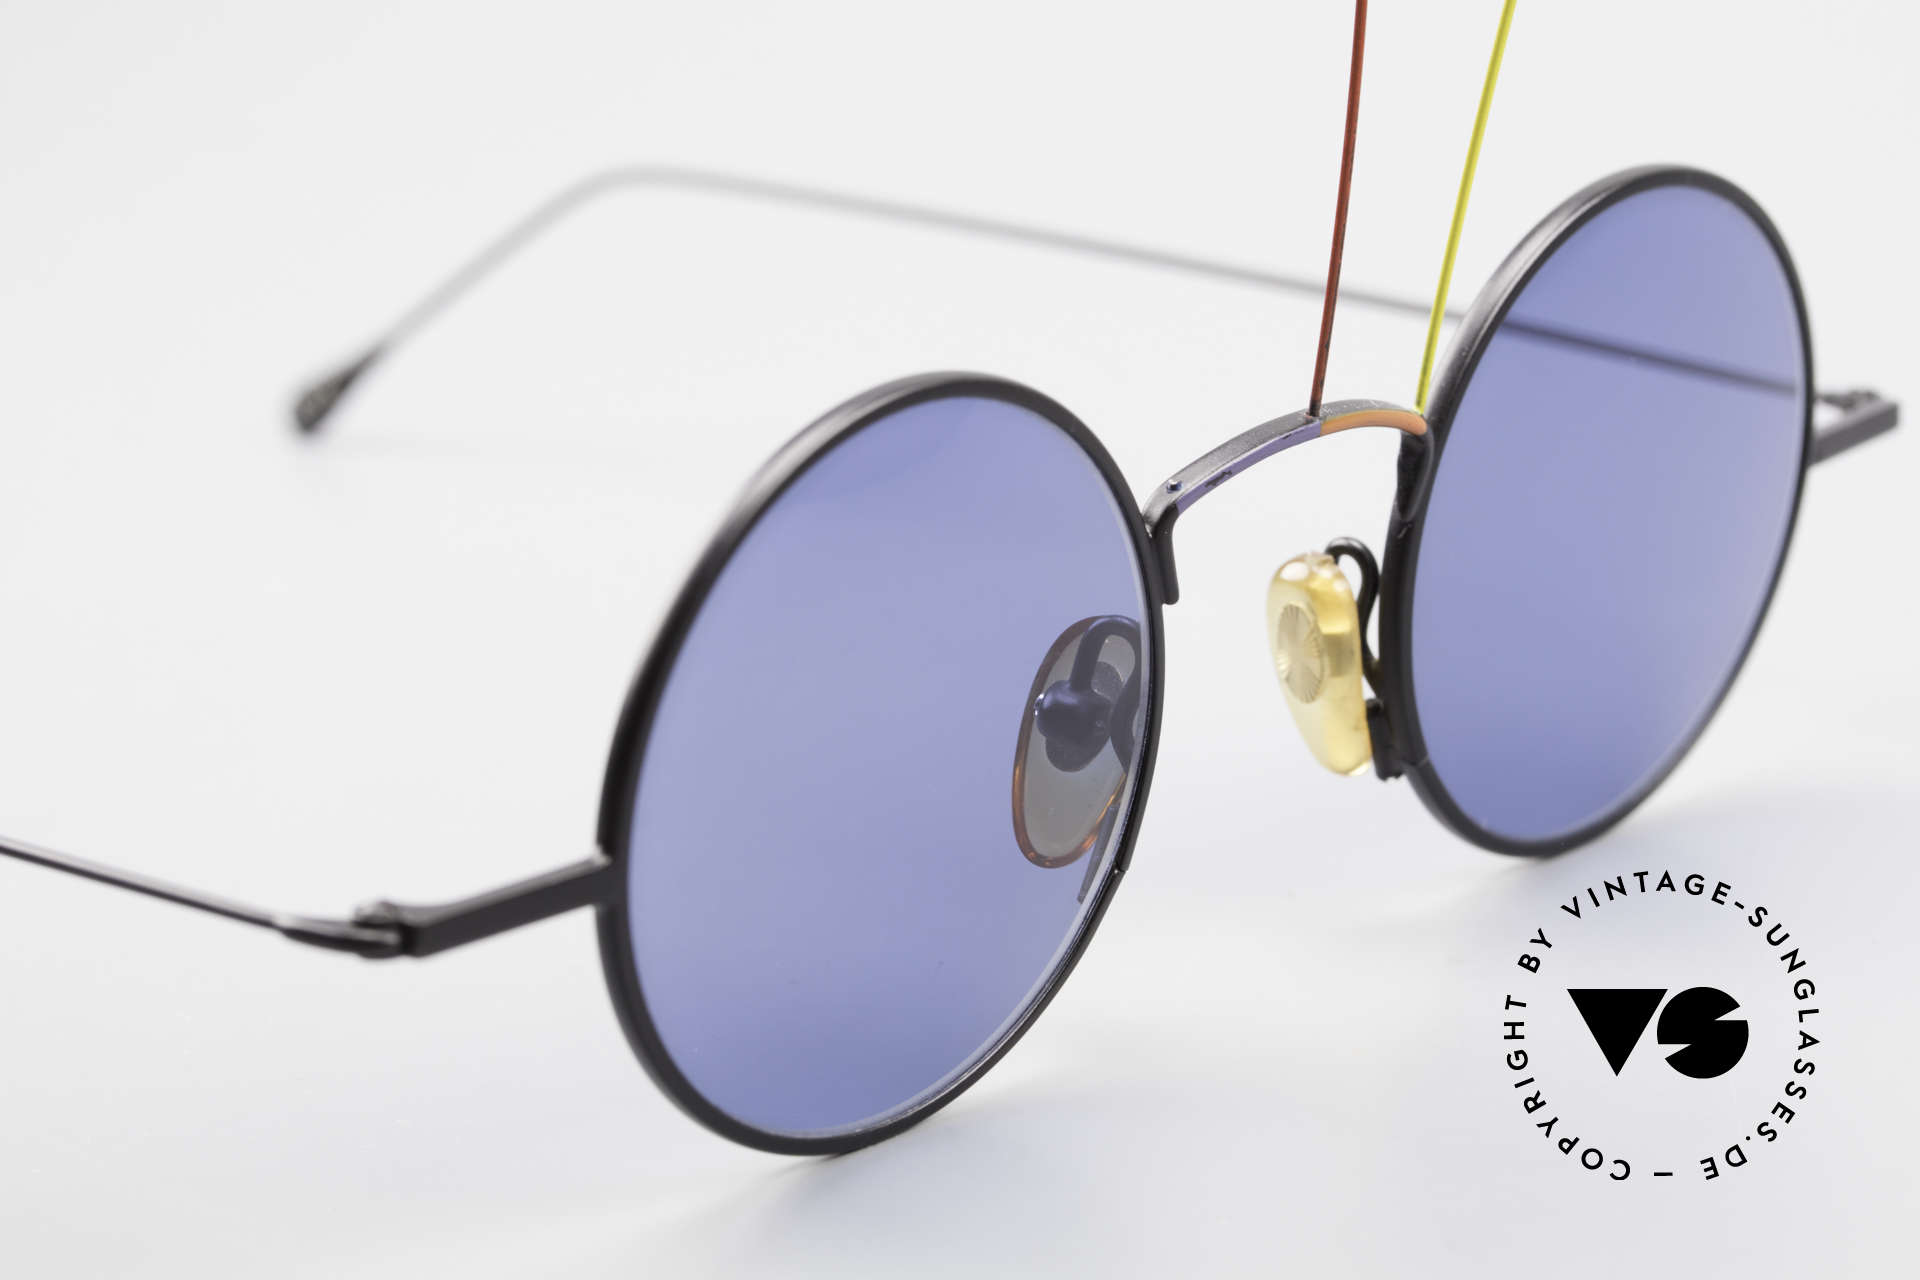 Casanova Arché 3 Limited Art Sunglasses 80's, limited edition (109/300) - only 300 models, worldwide, Made for Men and Women